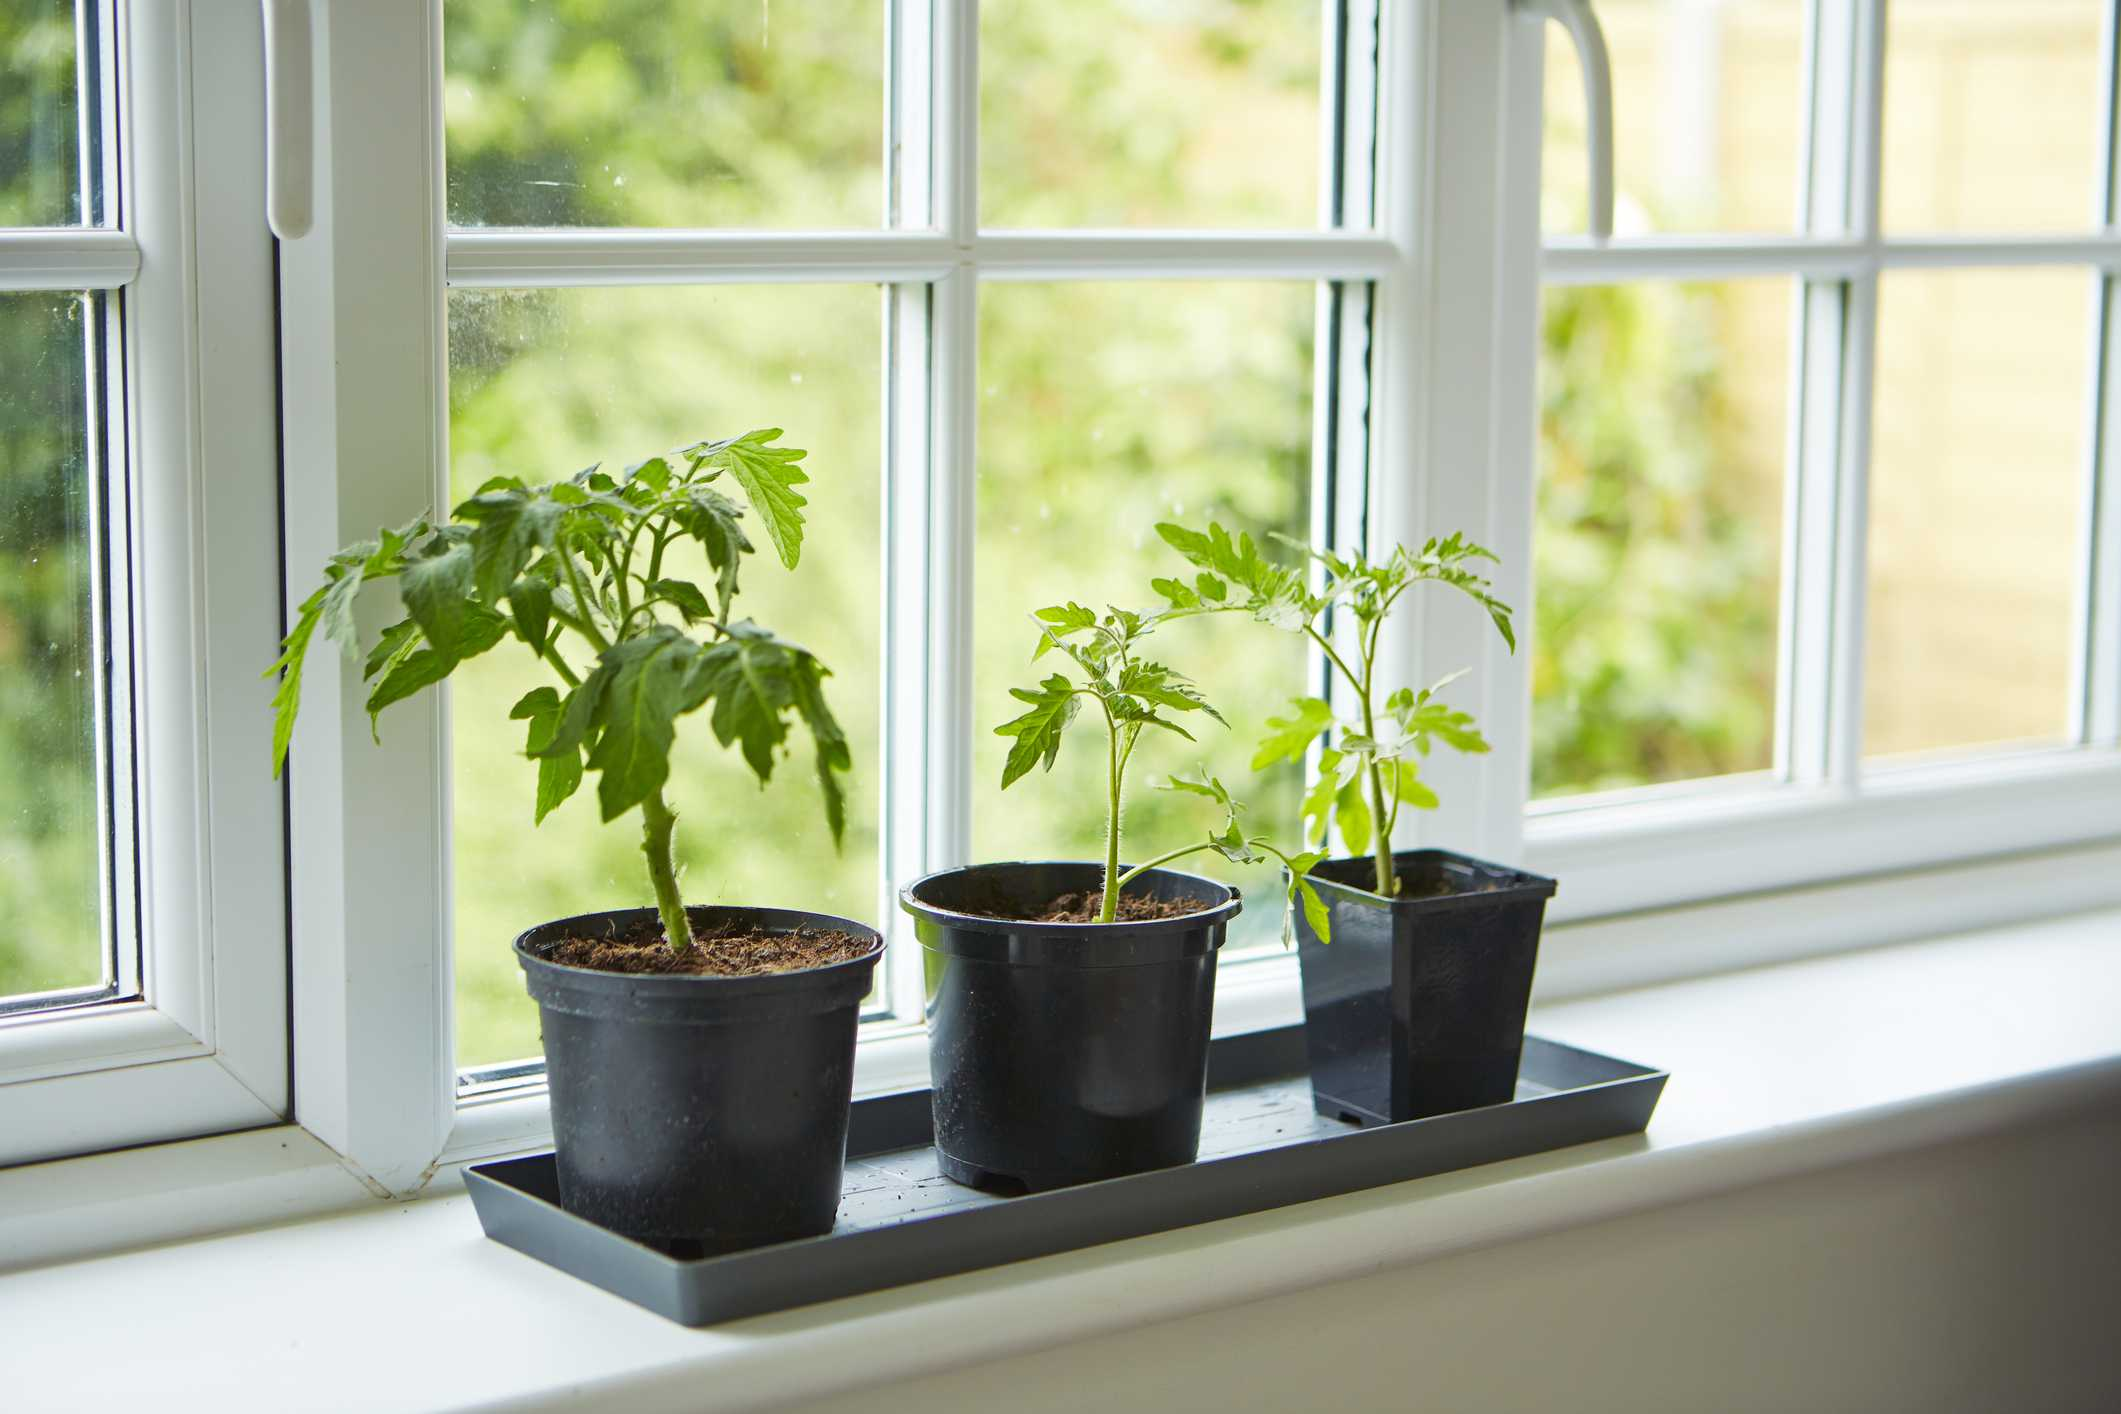 Tips For Growing Tomato Plants From Seed